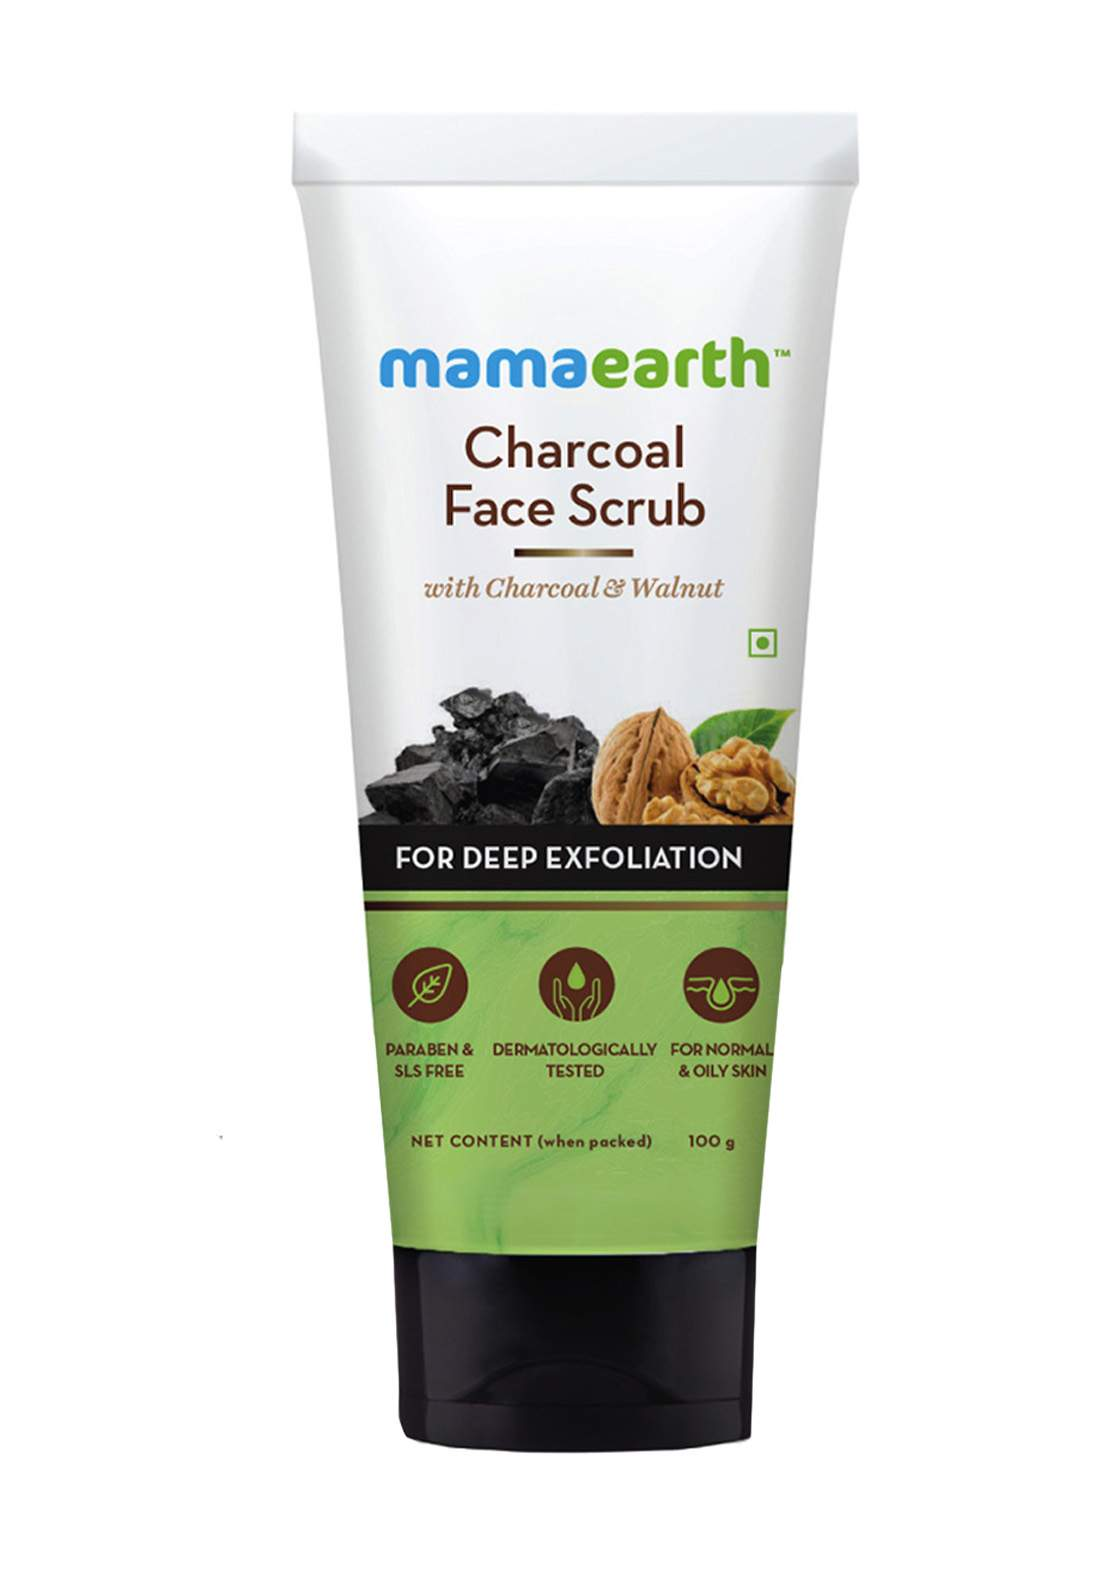 Mamaearth Charcoal Face Scrub For Oily Skin And Normal Skin 100g مقشر للوجه